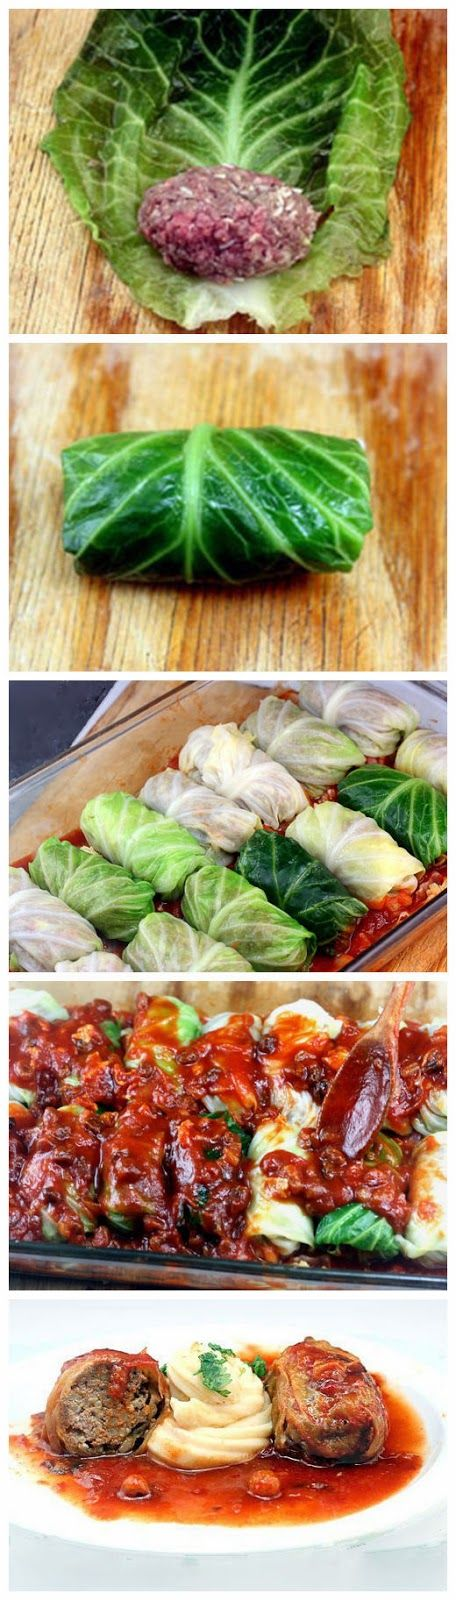 Amazing Stuffed Cabbage Rolls | yummykey